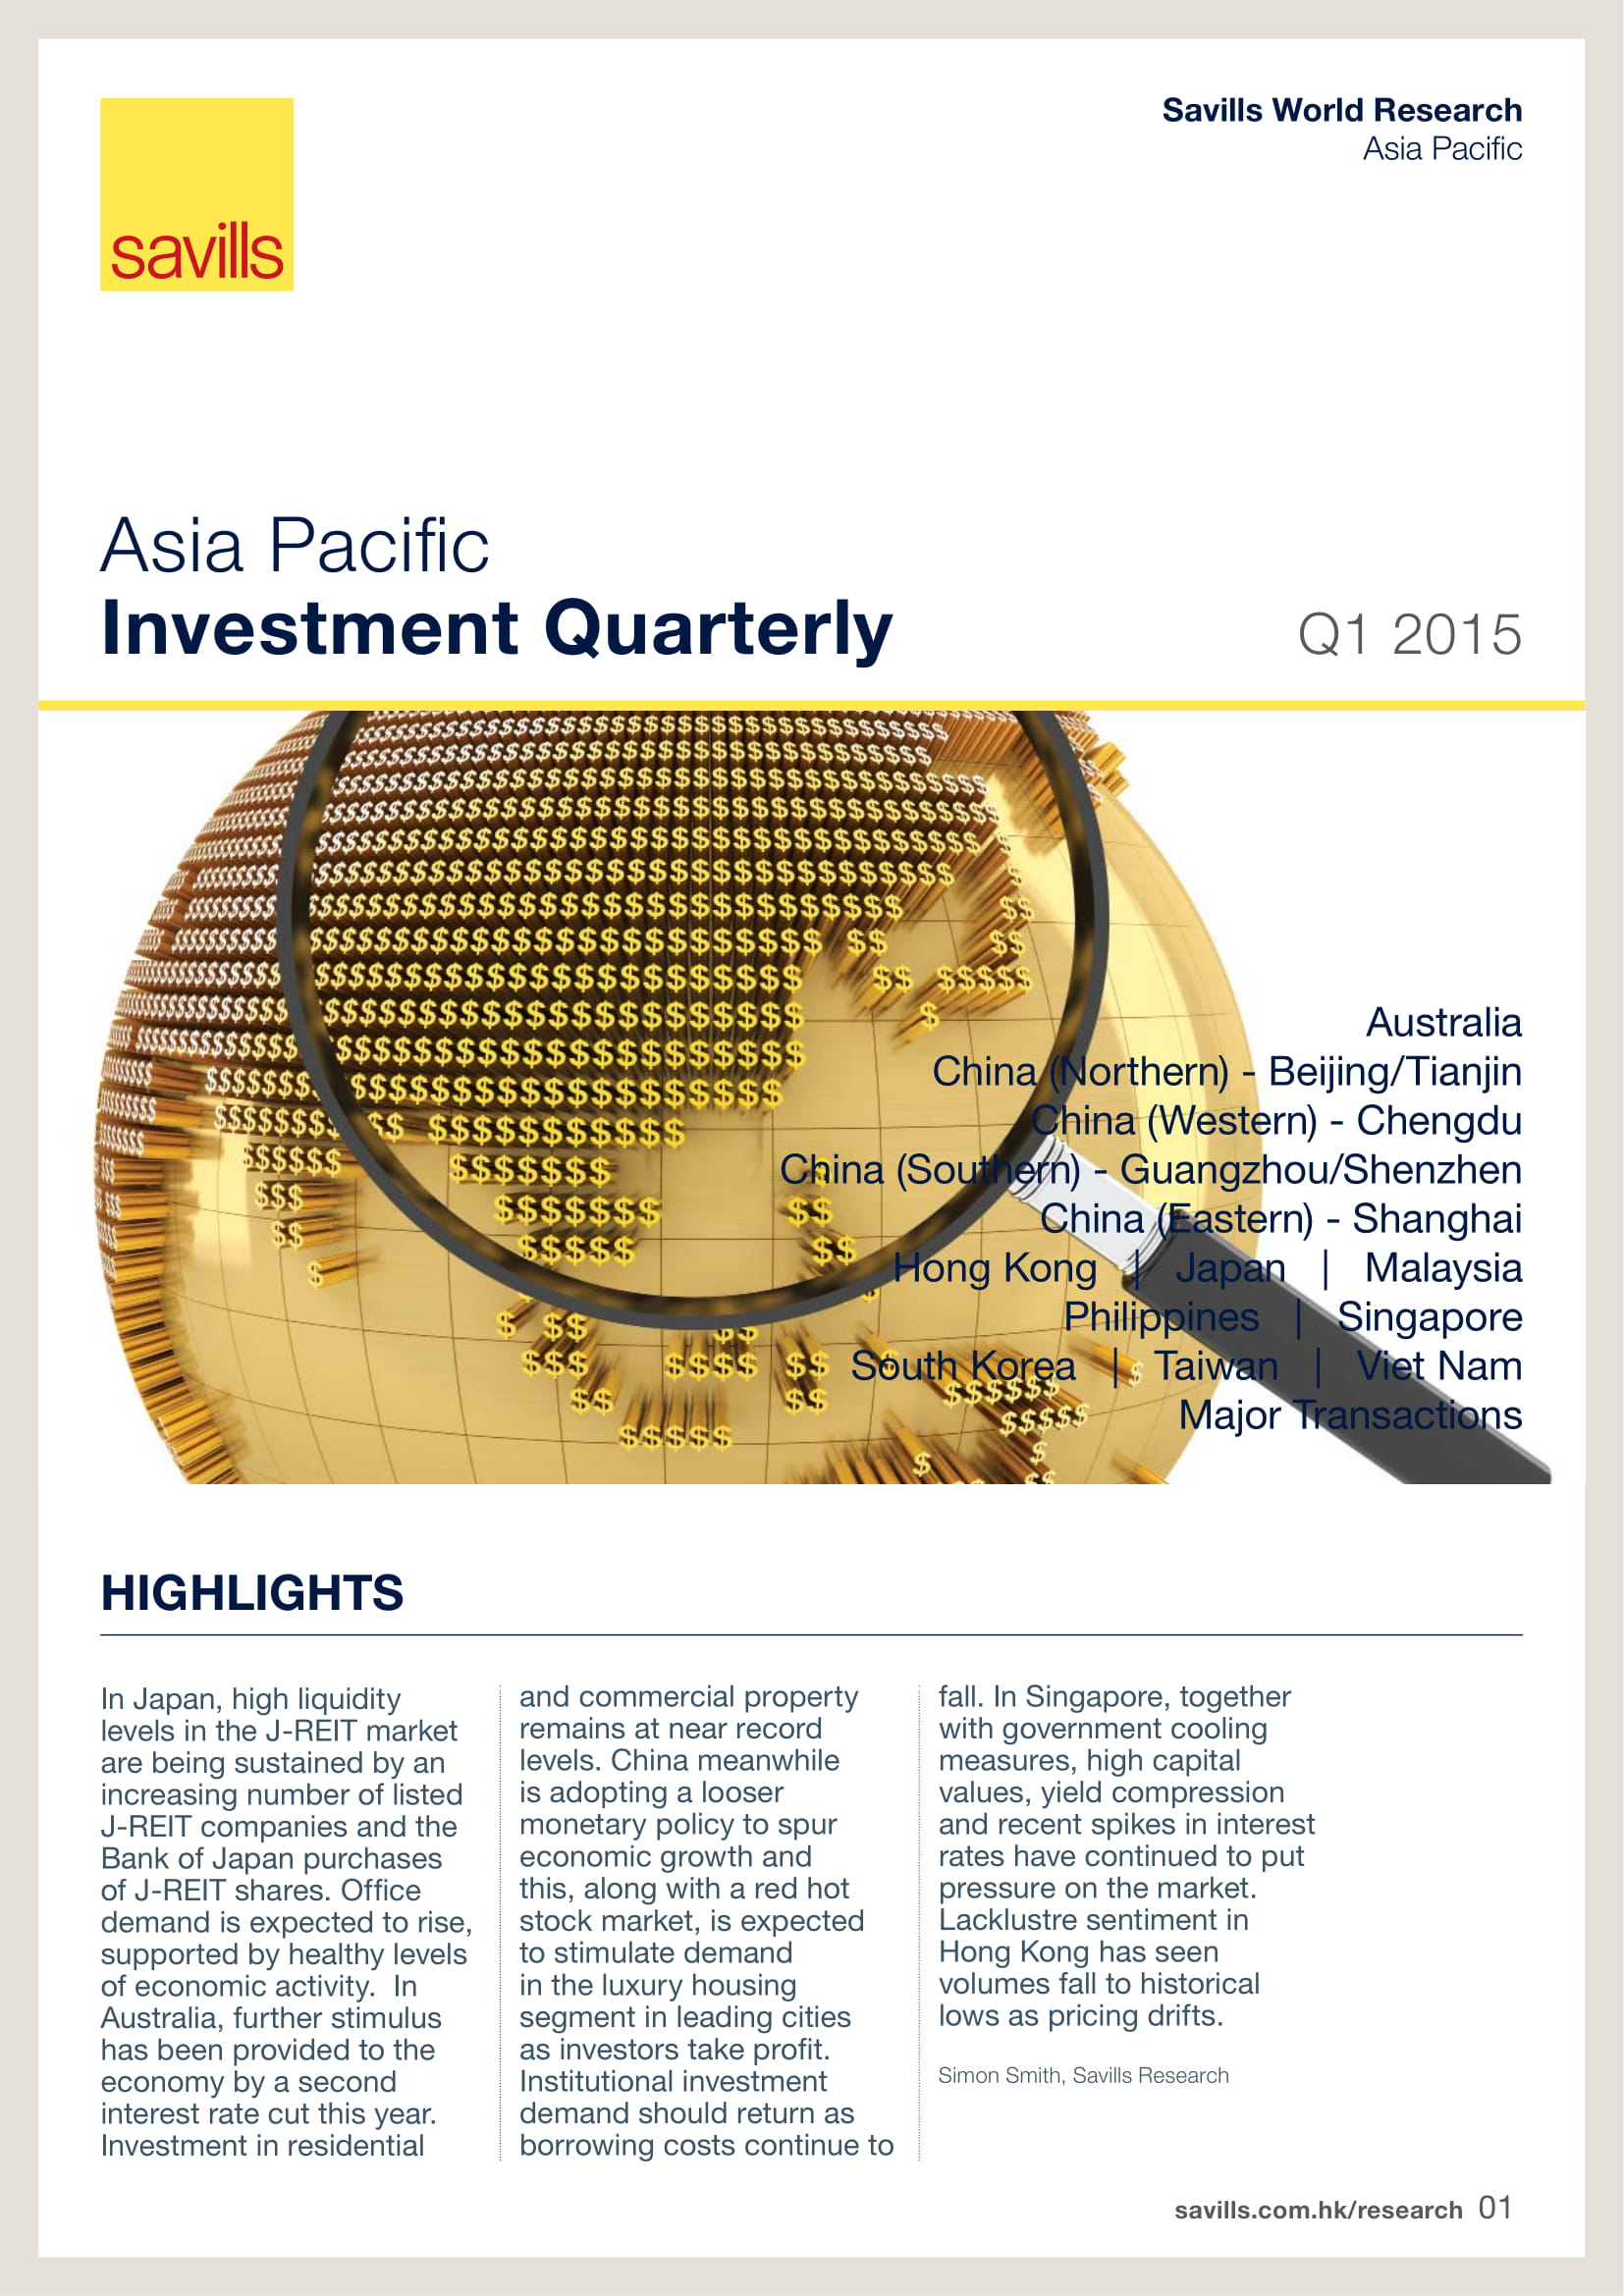 Asia Pacific Investment Quarterly Q1 2015